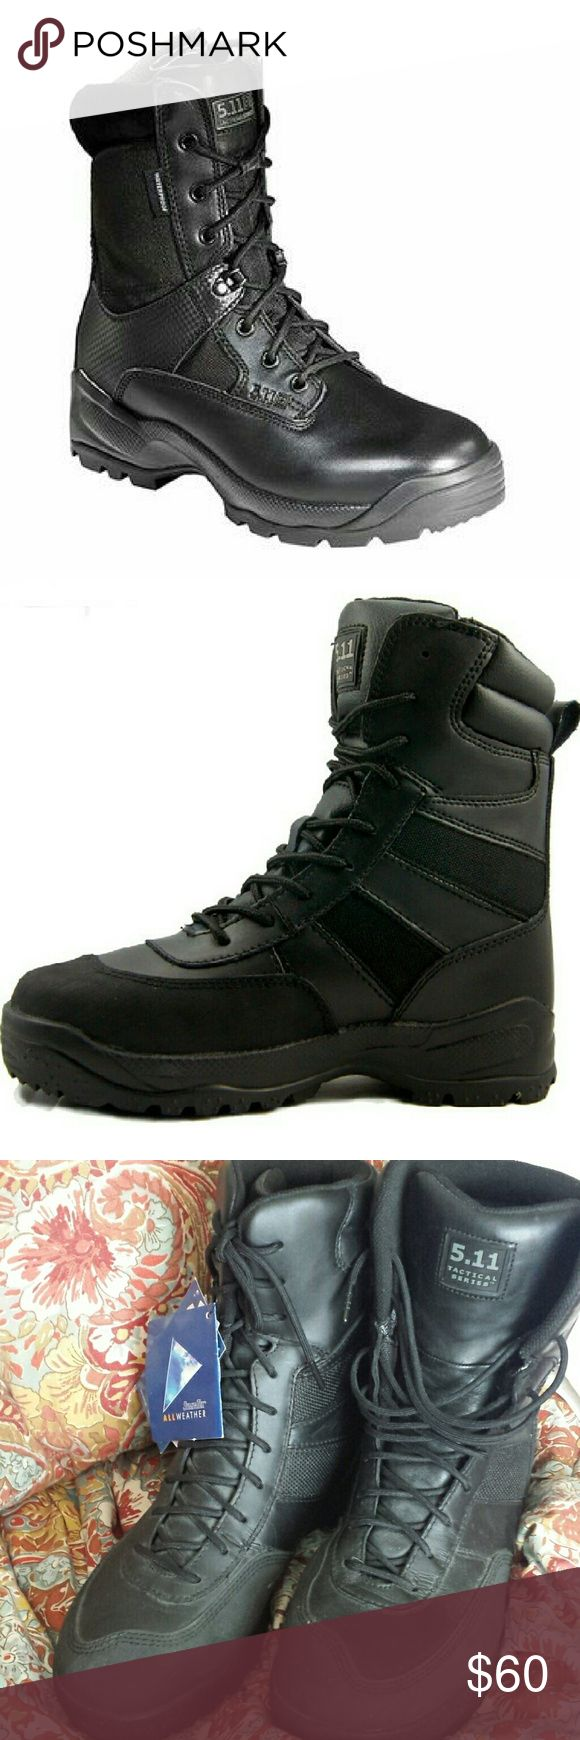 Mens Tactical Boots New with tags but a bit dusty from sitting around unused. 511 tactical Sympatex all weather lace up boot in size 11. Other features: AEGIS microbe shield to keep shoe fresh; dri-lex sweat control fibers; Agion environmentally friendly antimicrobial. Shoes Boots